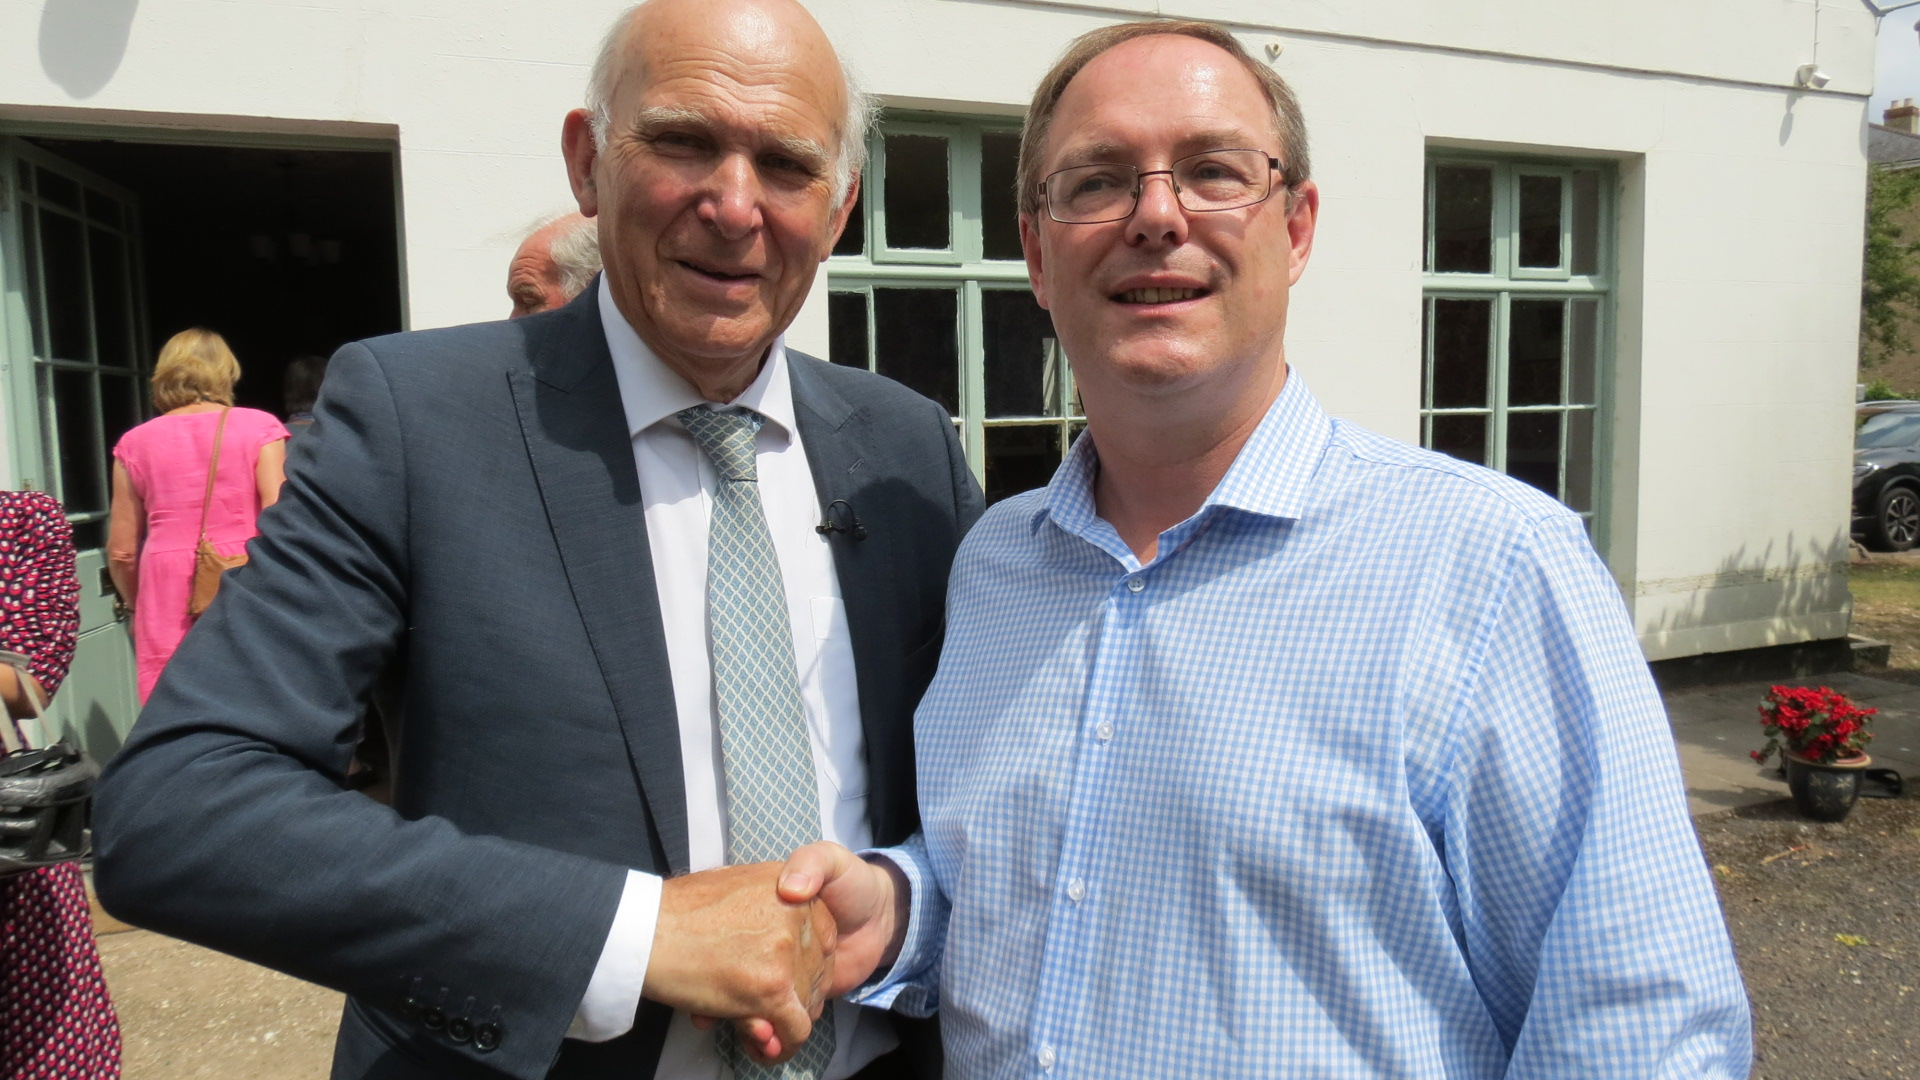 Shortly after joining Andy Sully met Liberal Democrat Leader Vince Cable on a recent visit to Taunton